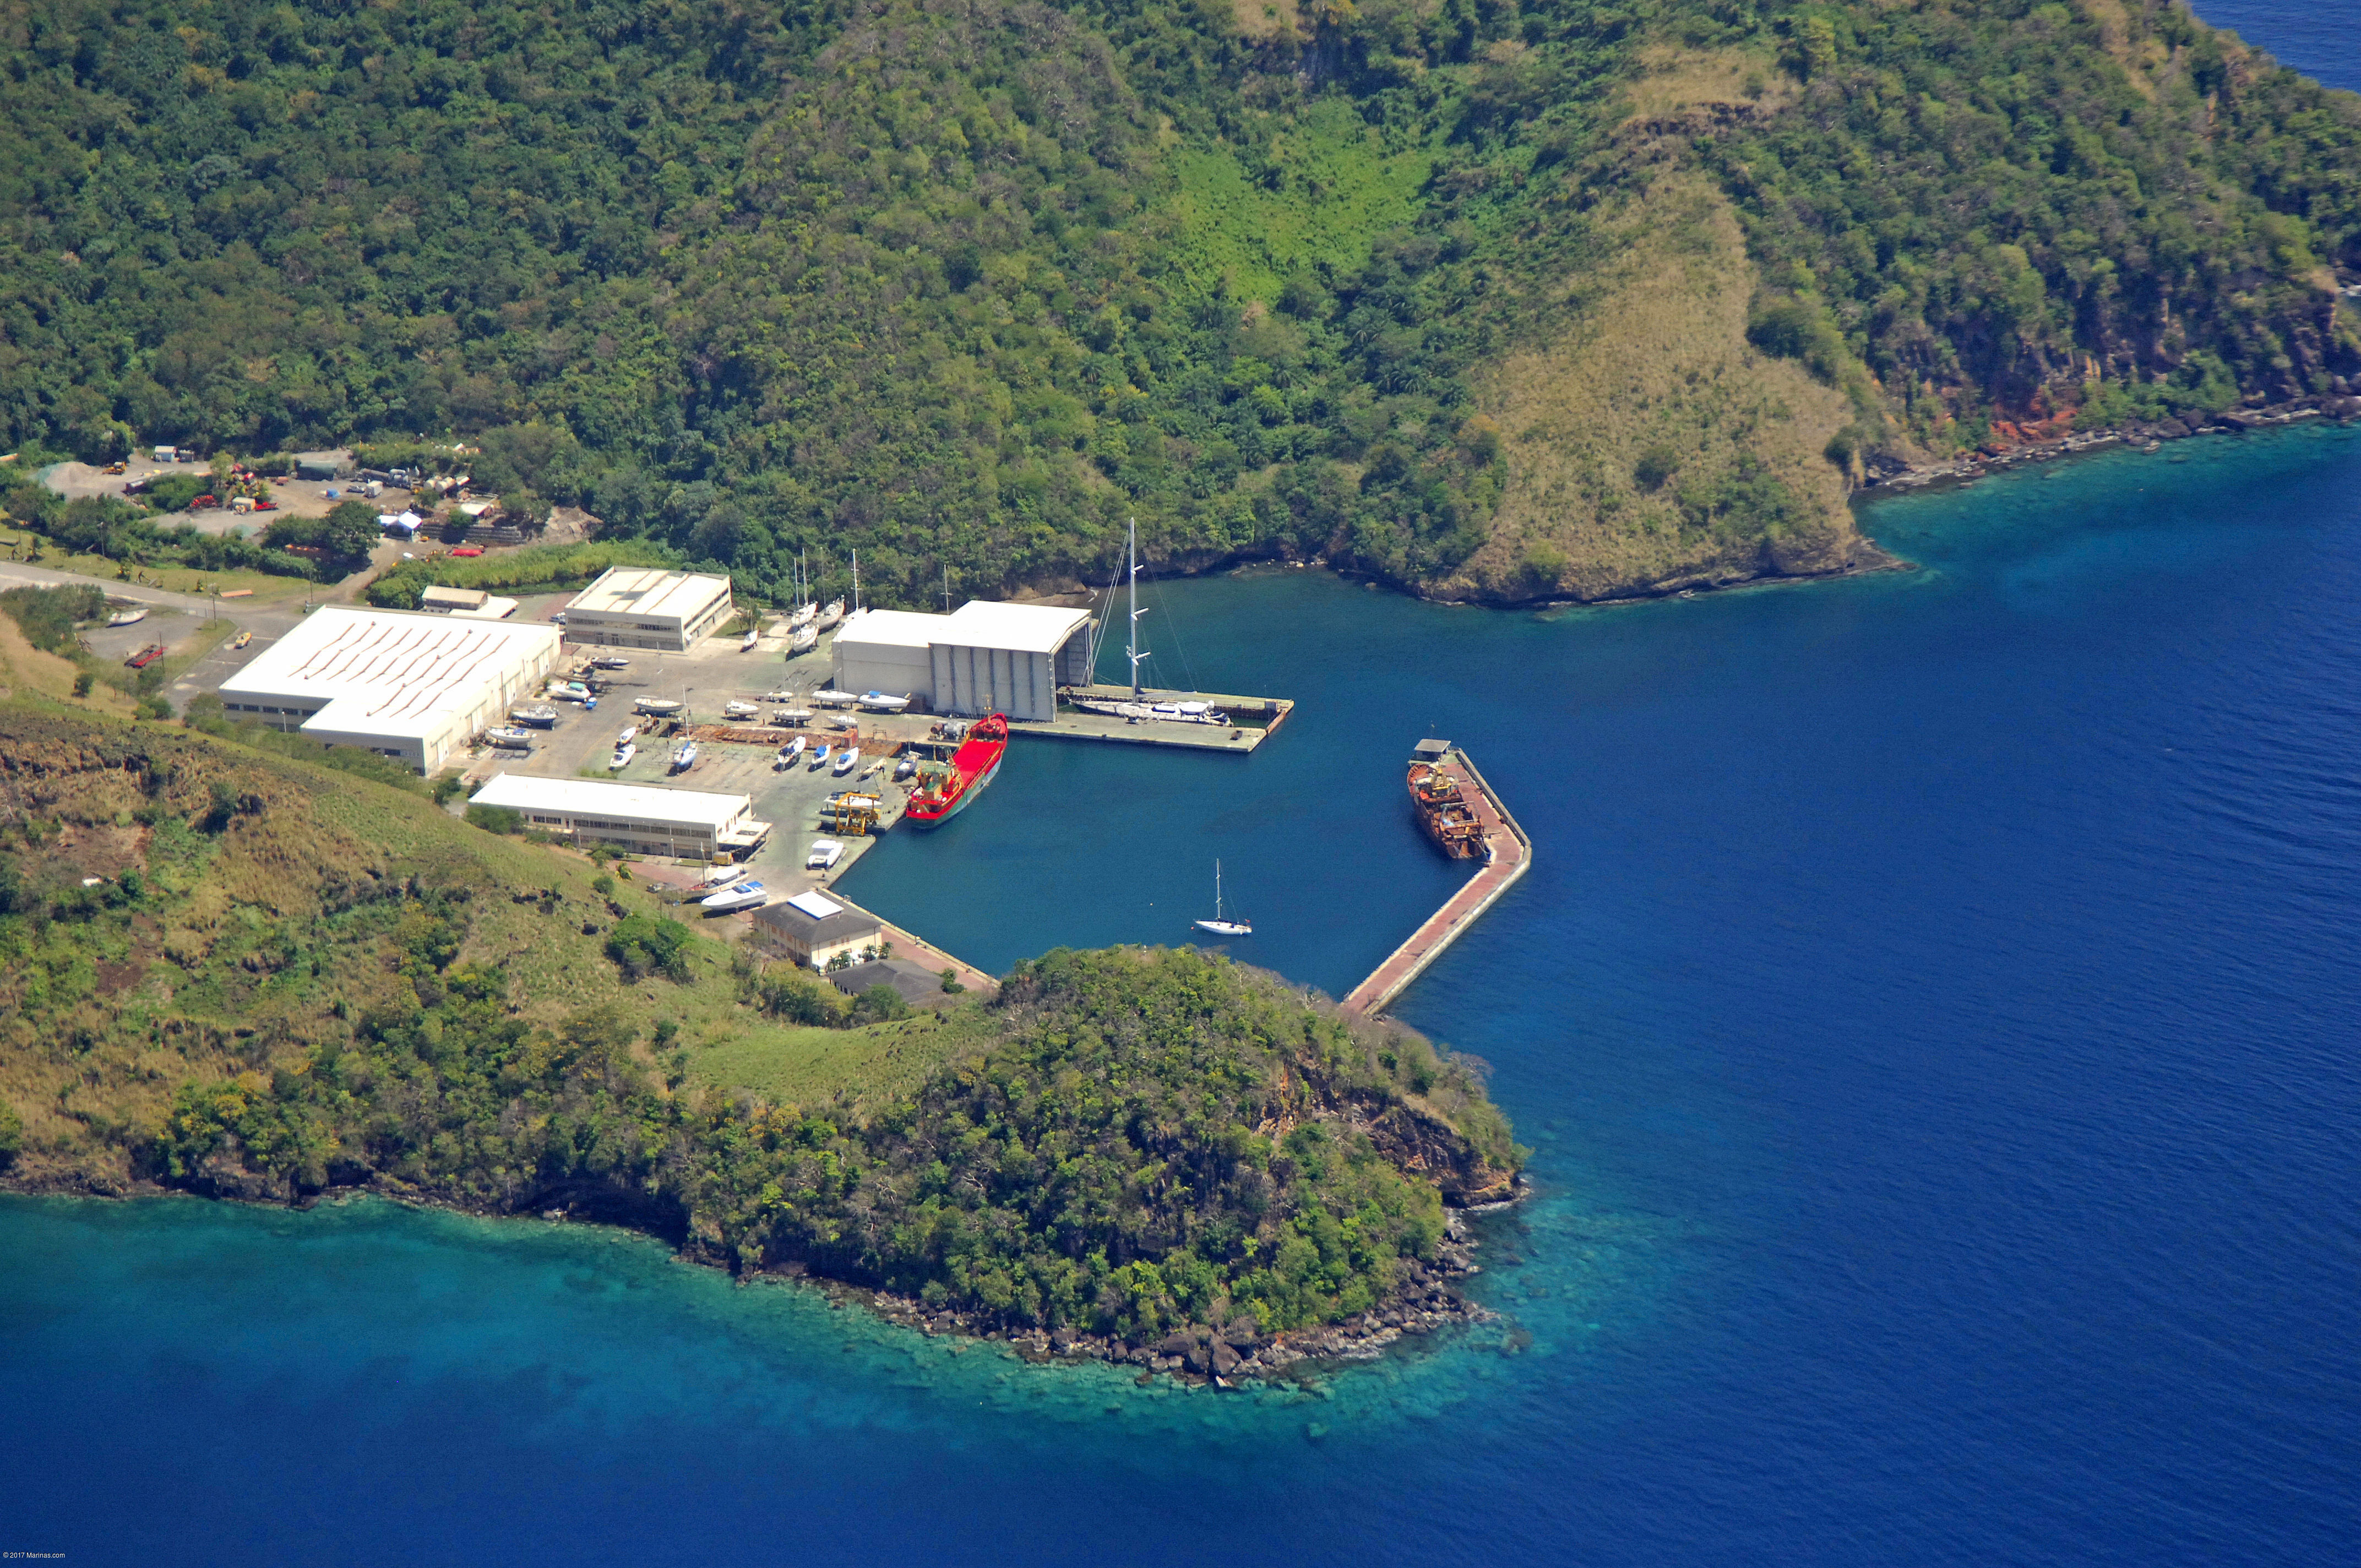 Ottley Hall Marina & Shipyard in Kingstown, St. Vincent and the Grenadine...